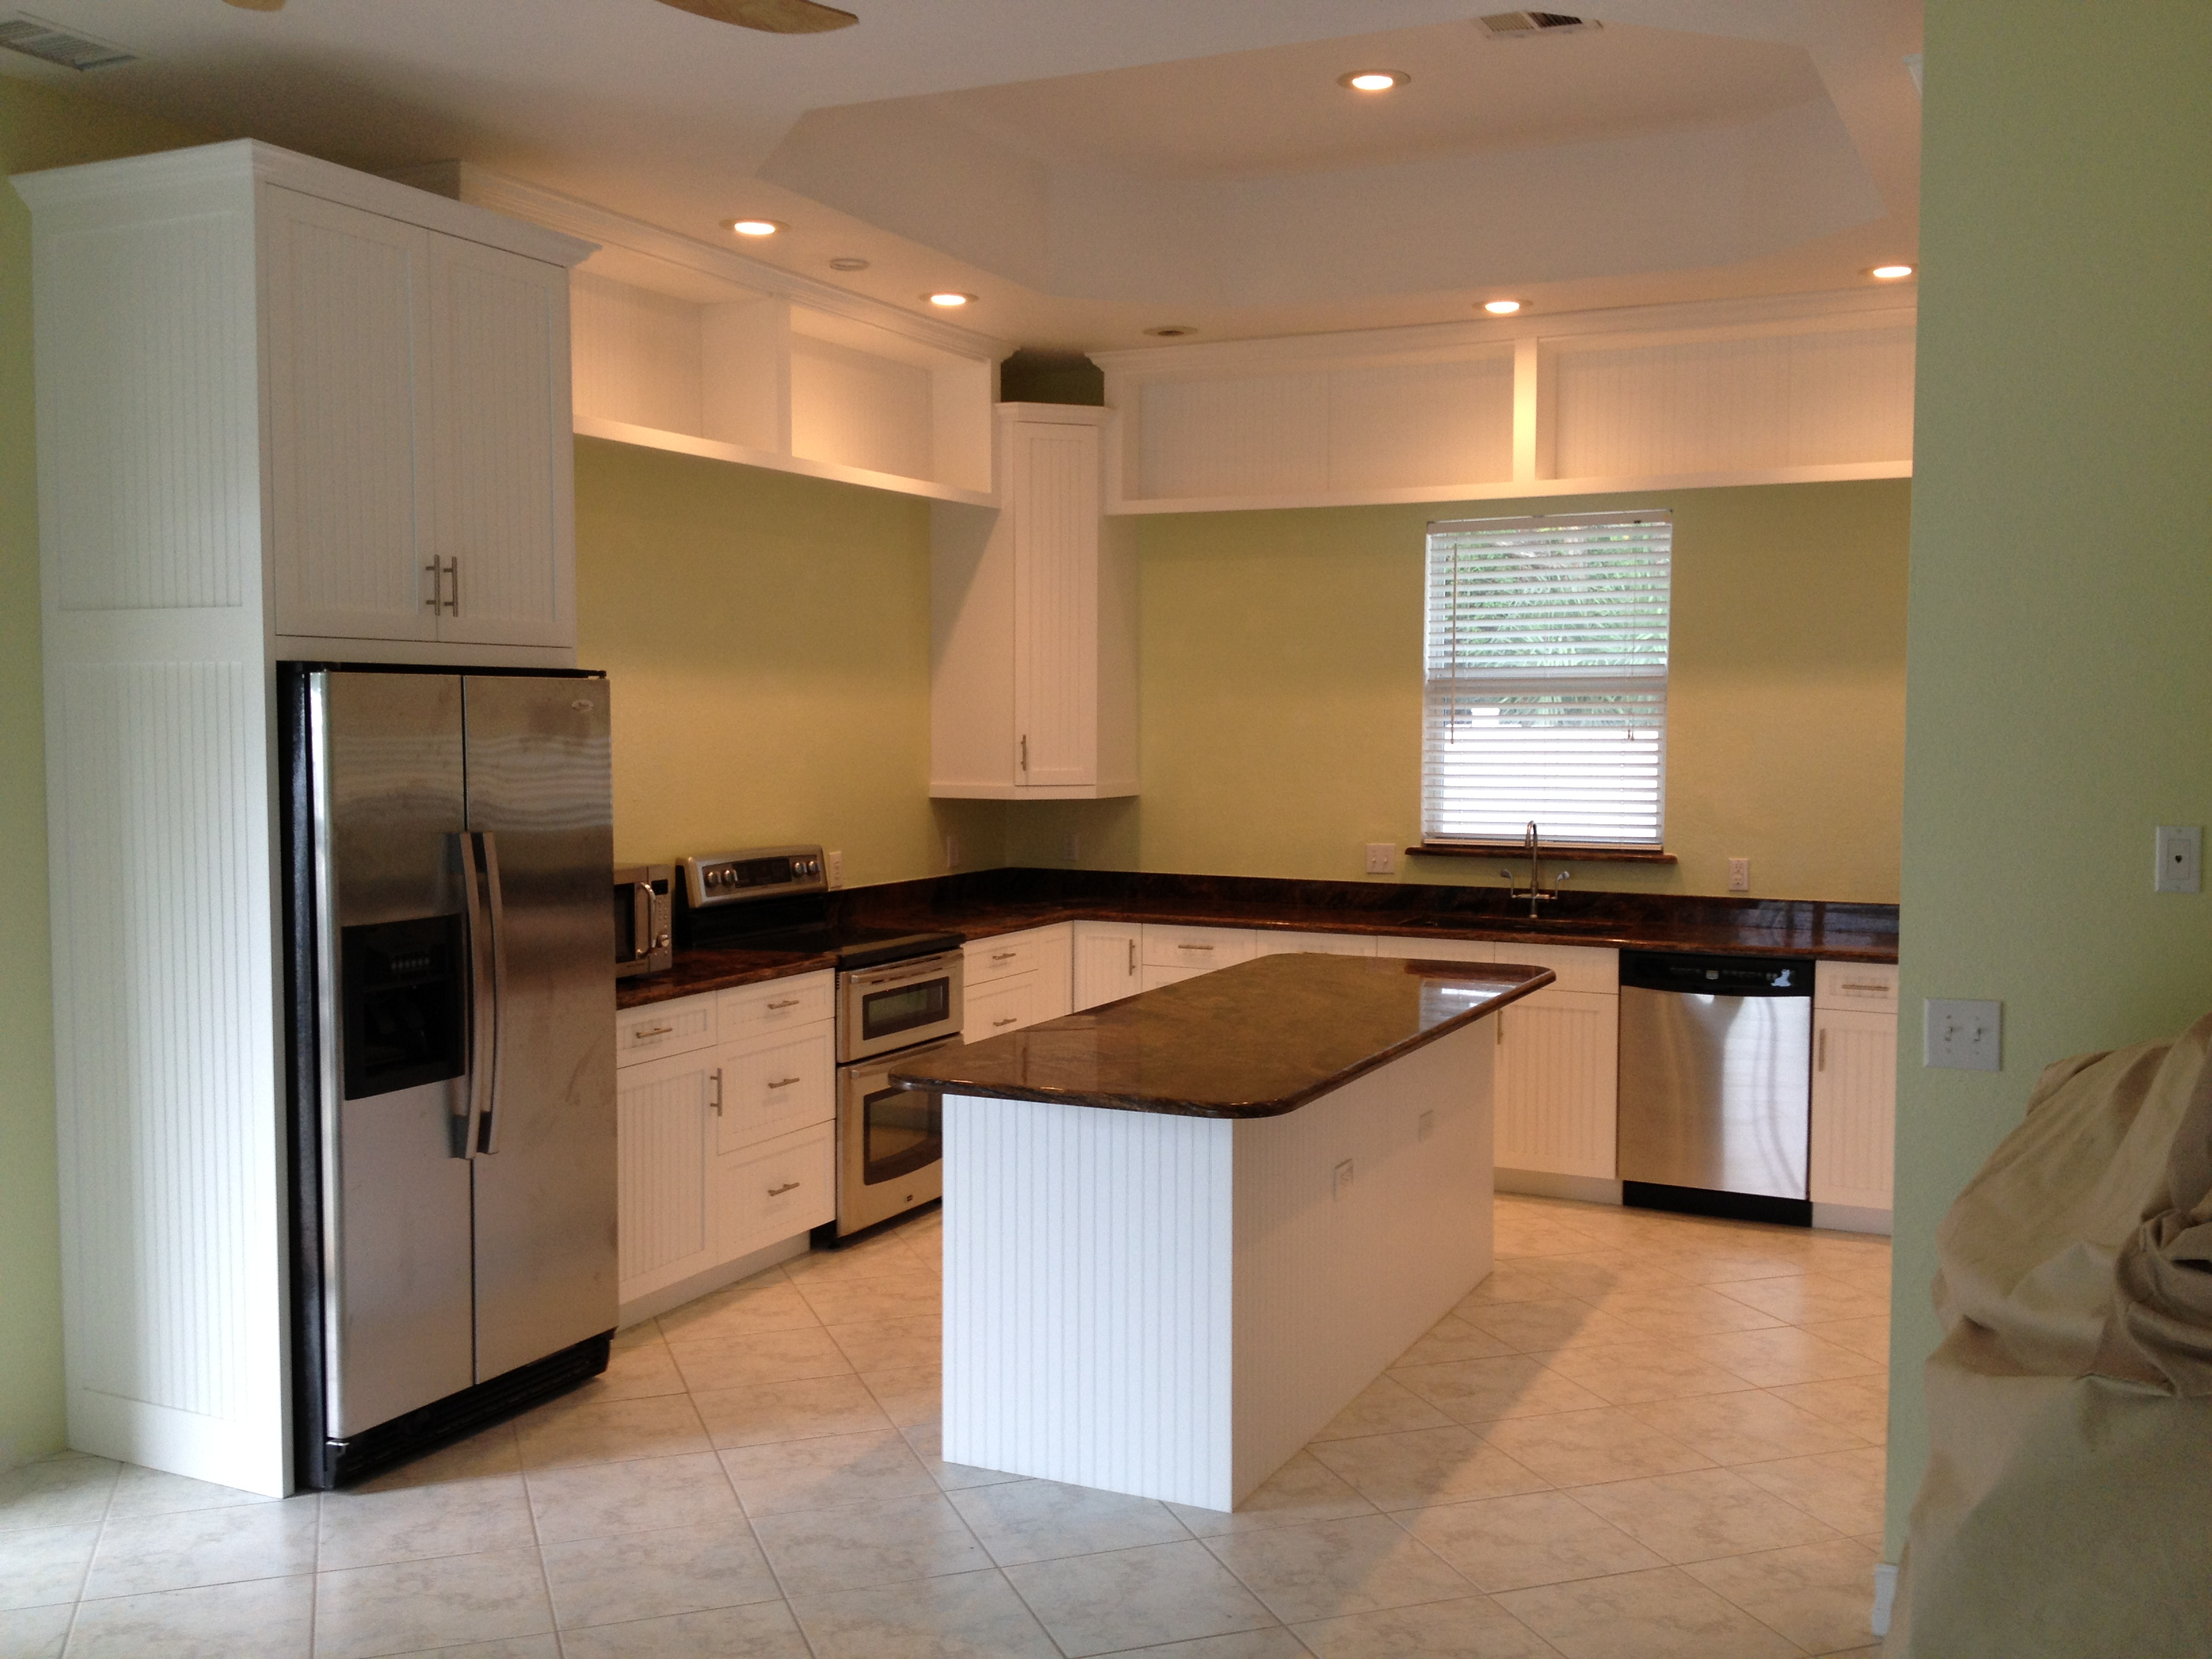 Lovely Cabinet Refacing Naples, KItchen Cabinets Naples FL, Cabinet Makers